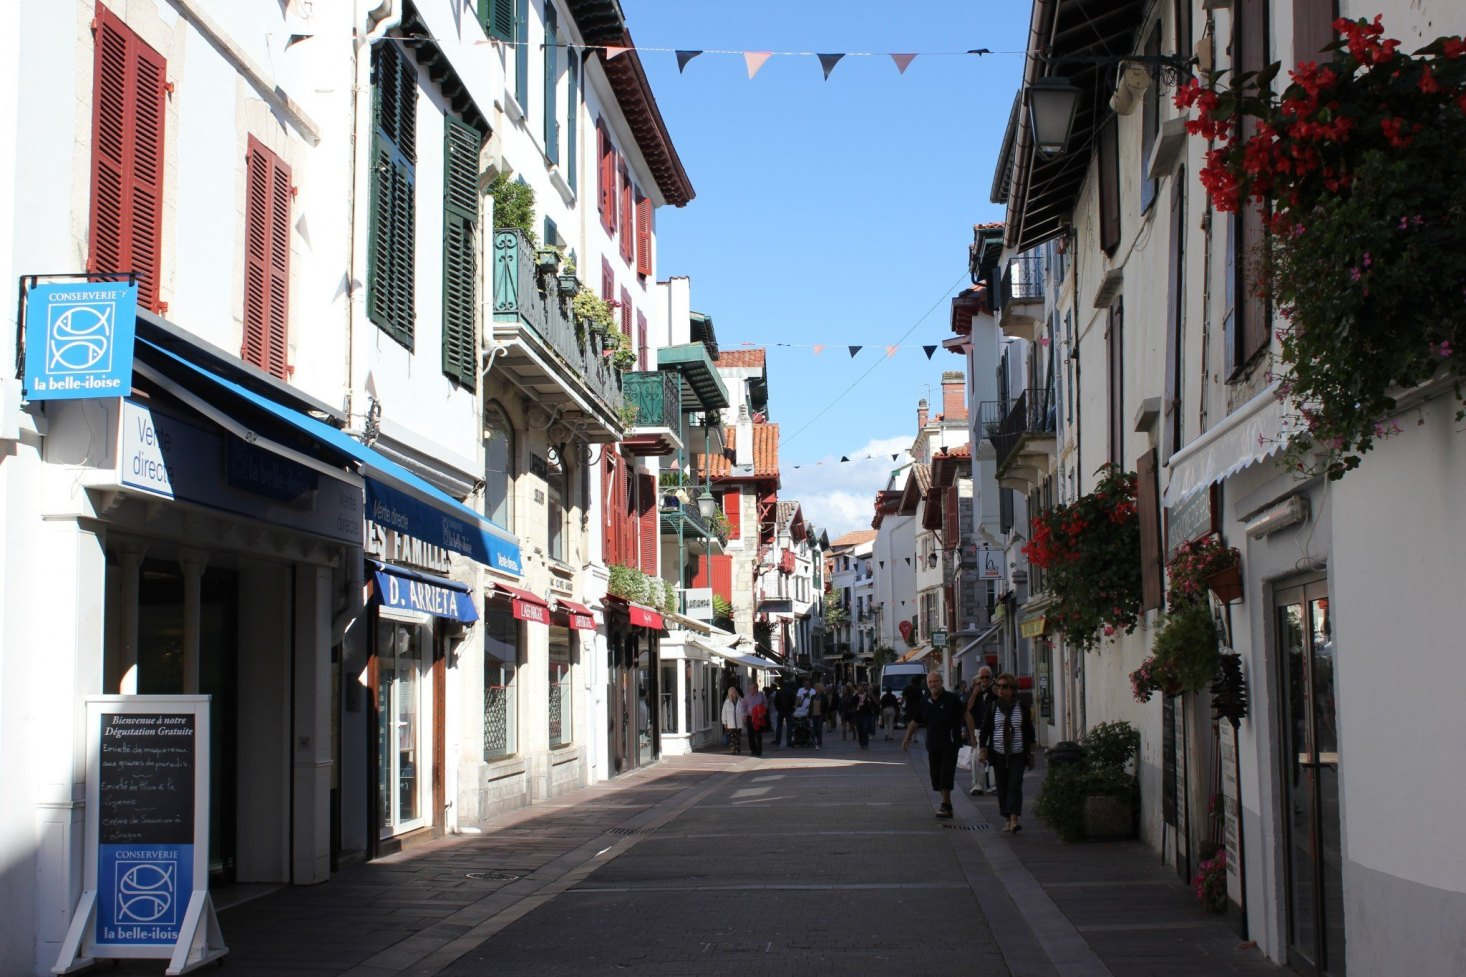 Pretty lane in St. Jean de Luz, France